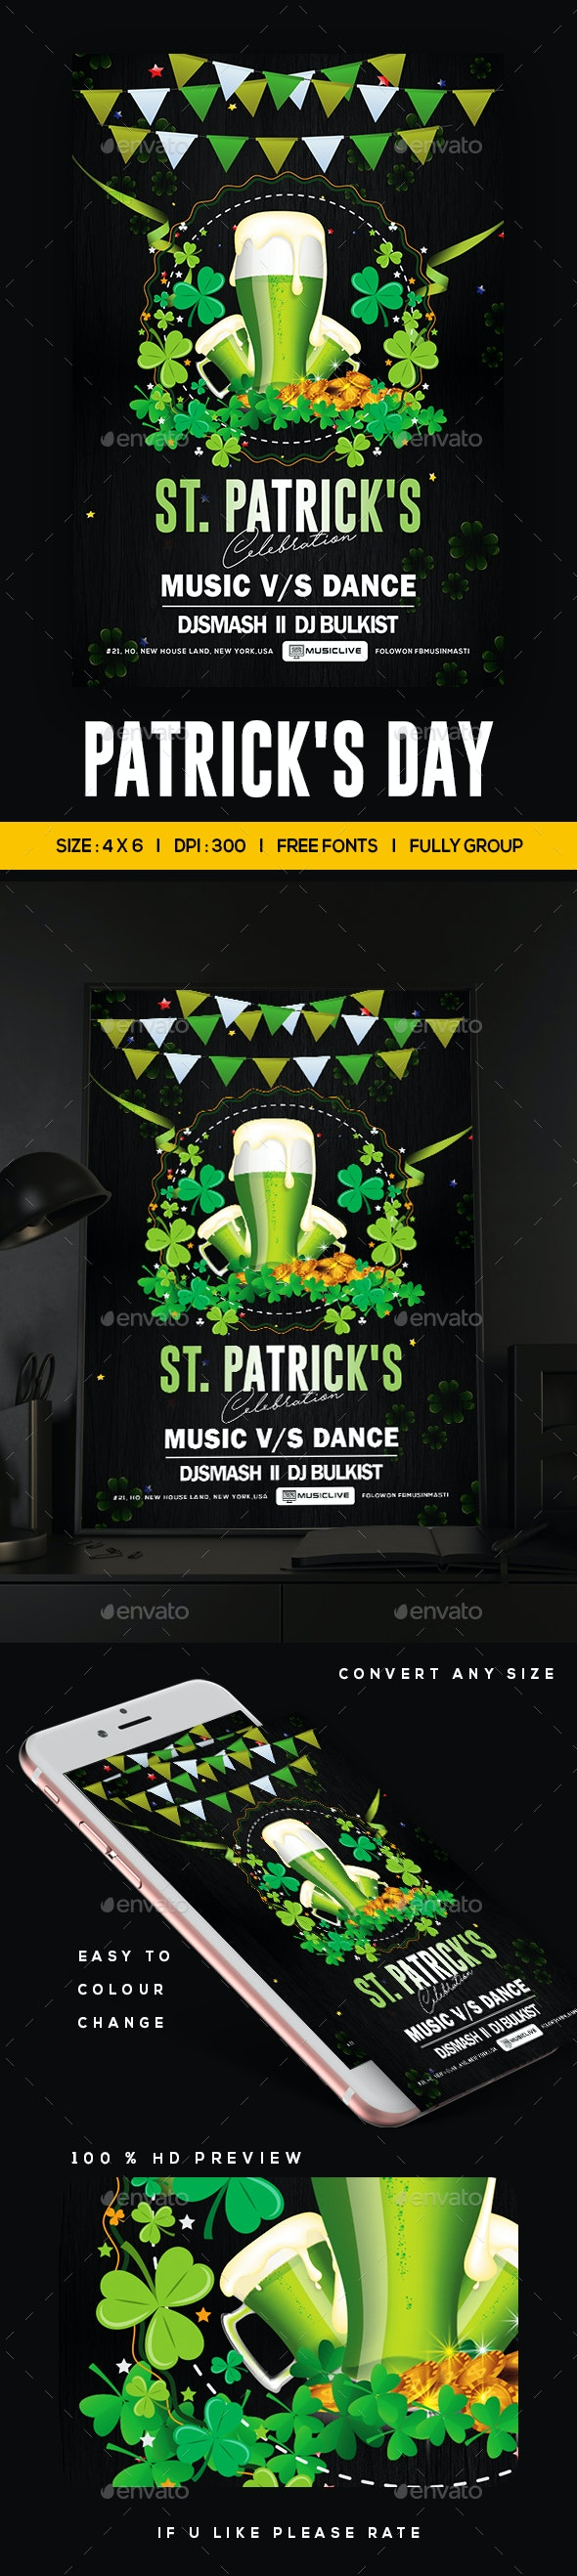 St. Patrick's Day Party Flyer - Clubs & Parties Events